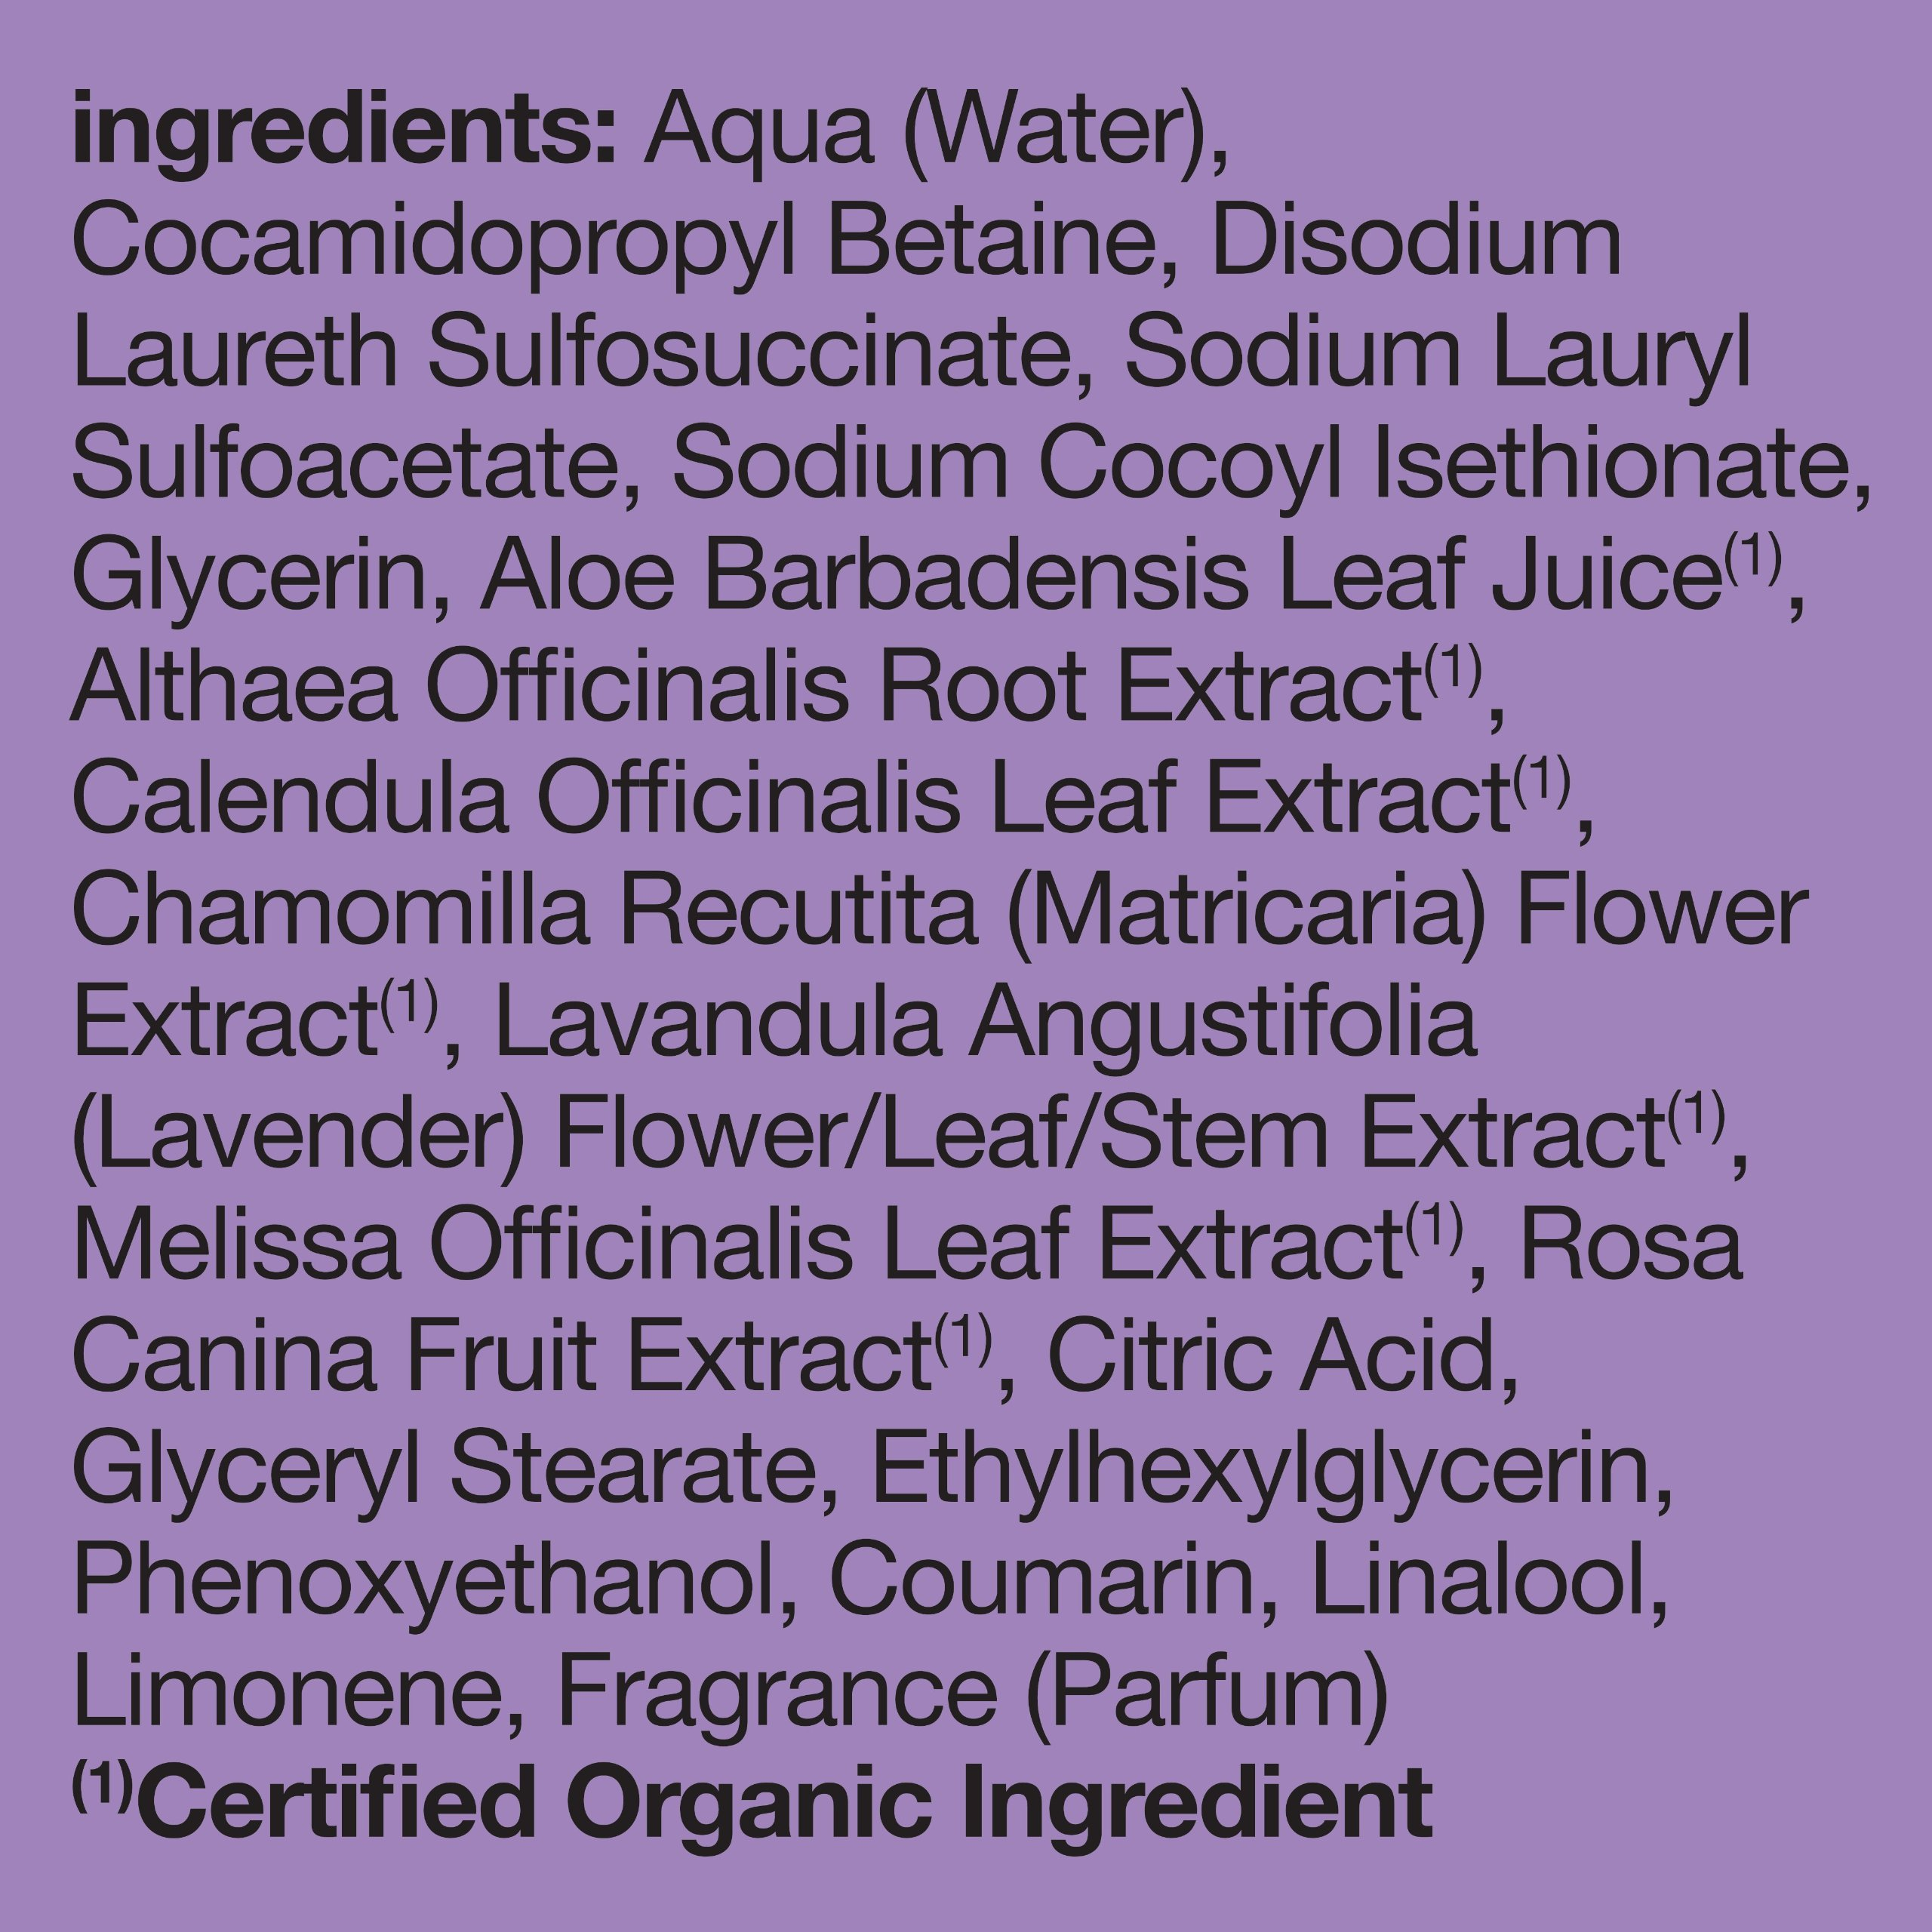 Alba Botanica Very Emollient, French Lavender Bath & Shower Gel, 32 Ounce by Alba Botanica (Image #5)